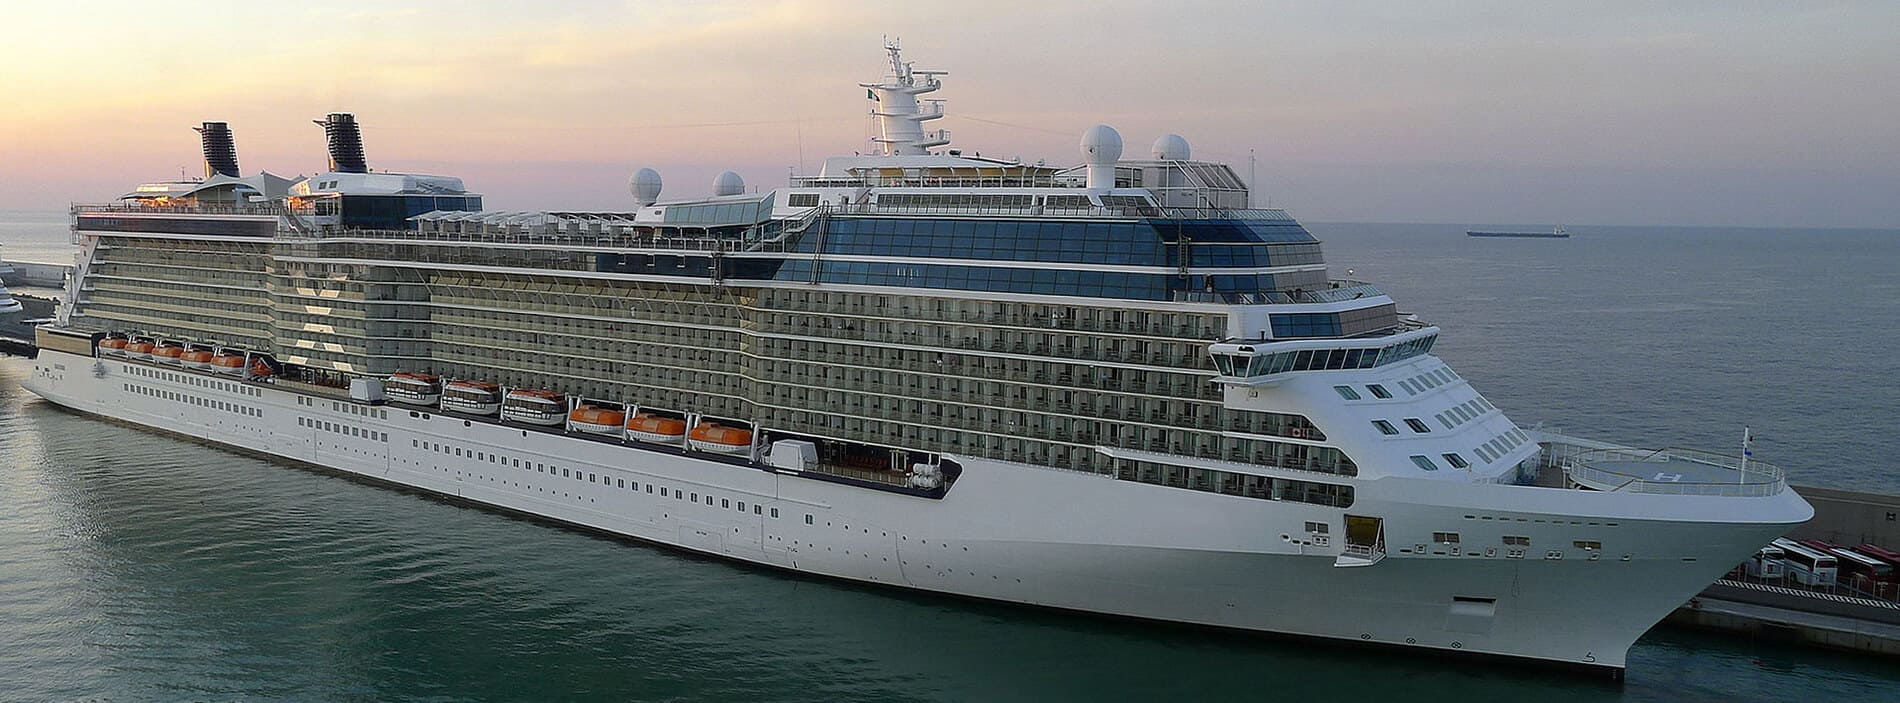 A large white ship, a Cruise Liner, gets ready to set sail